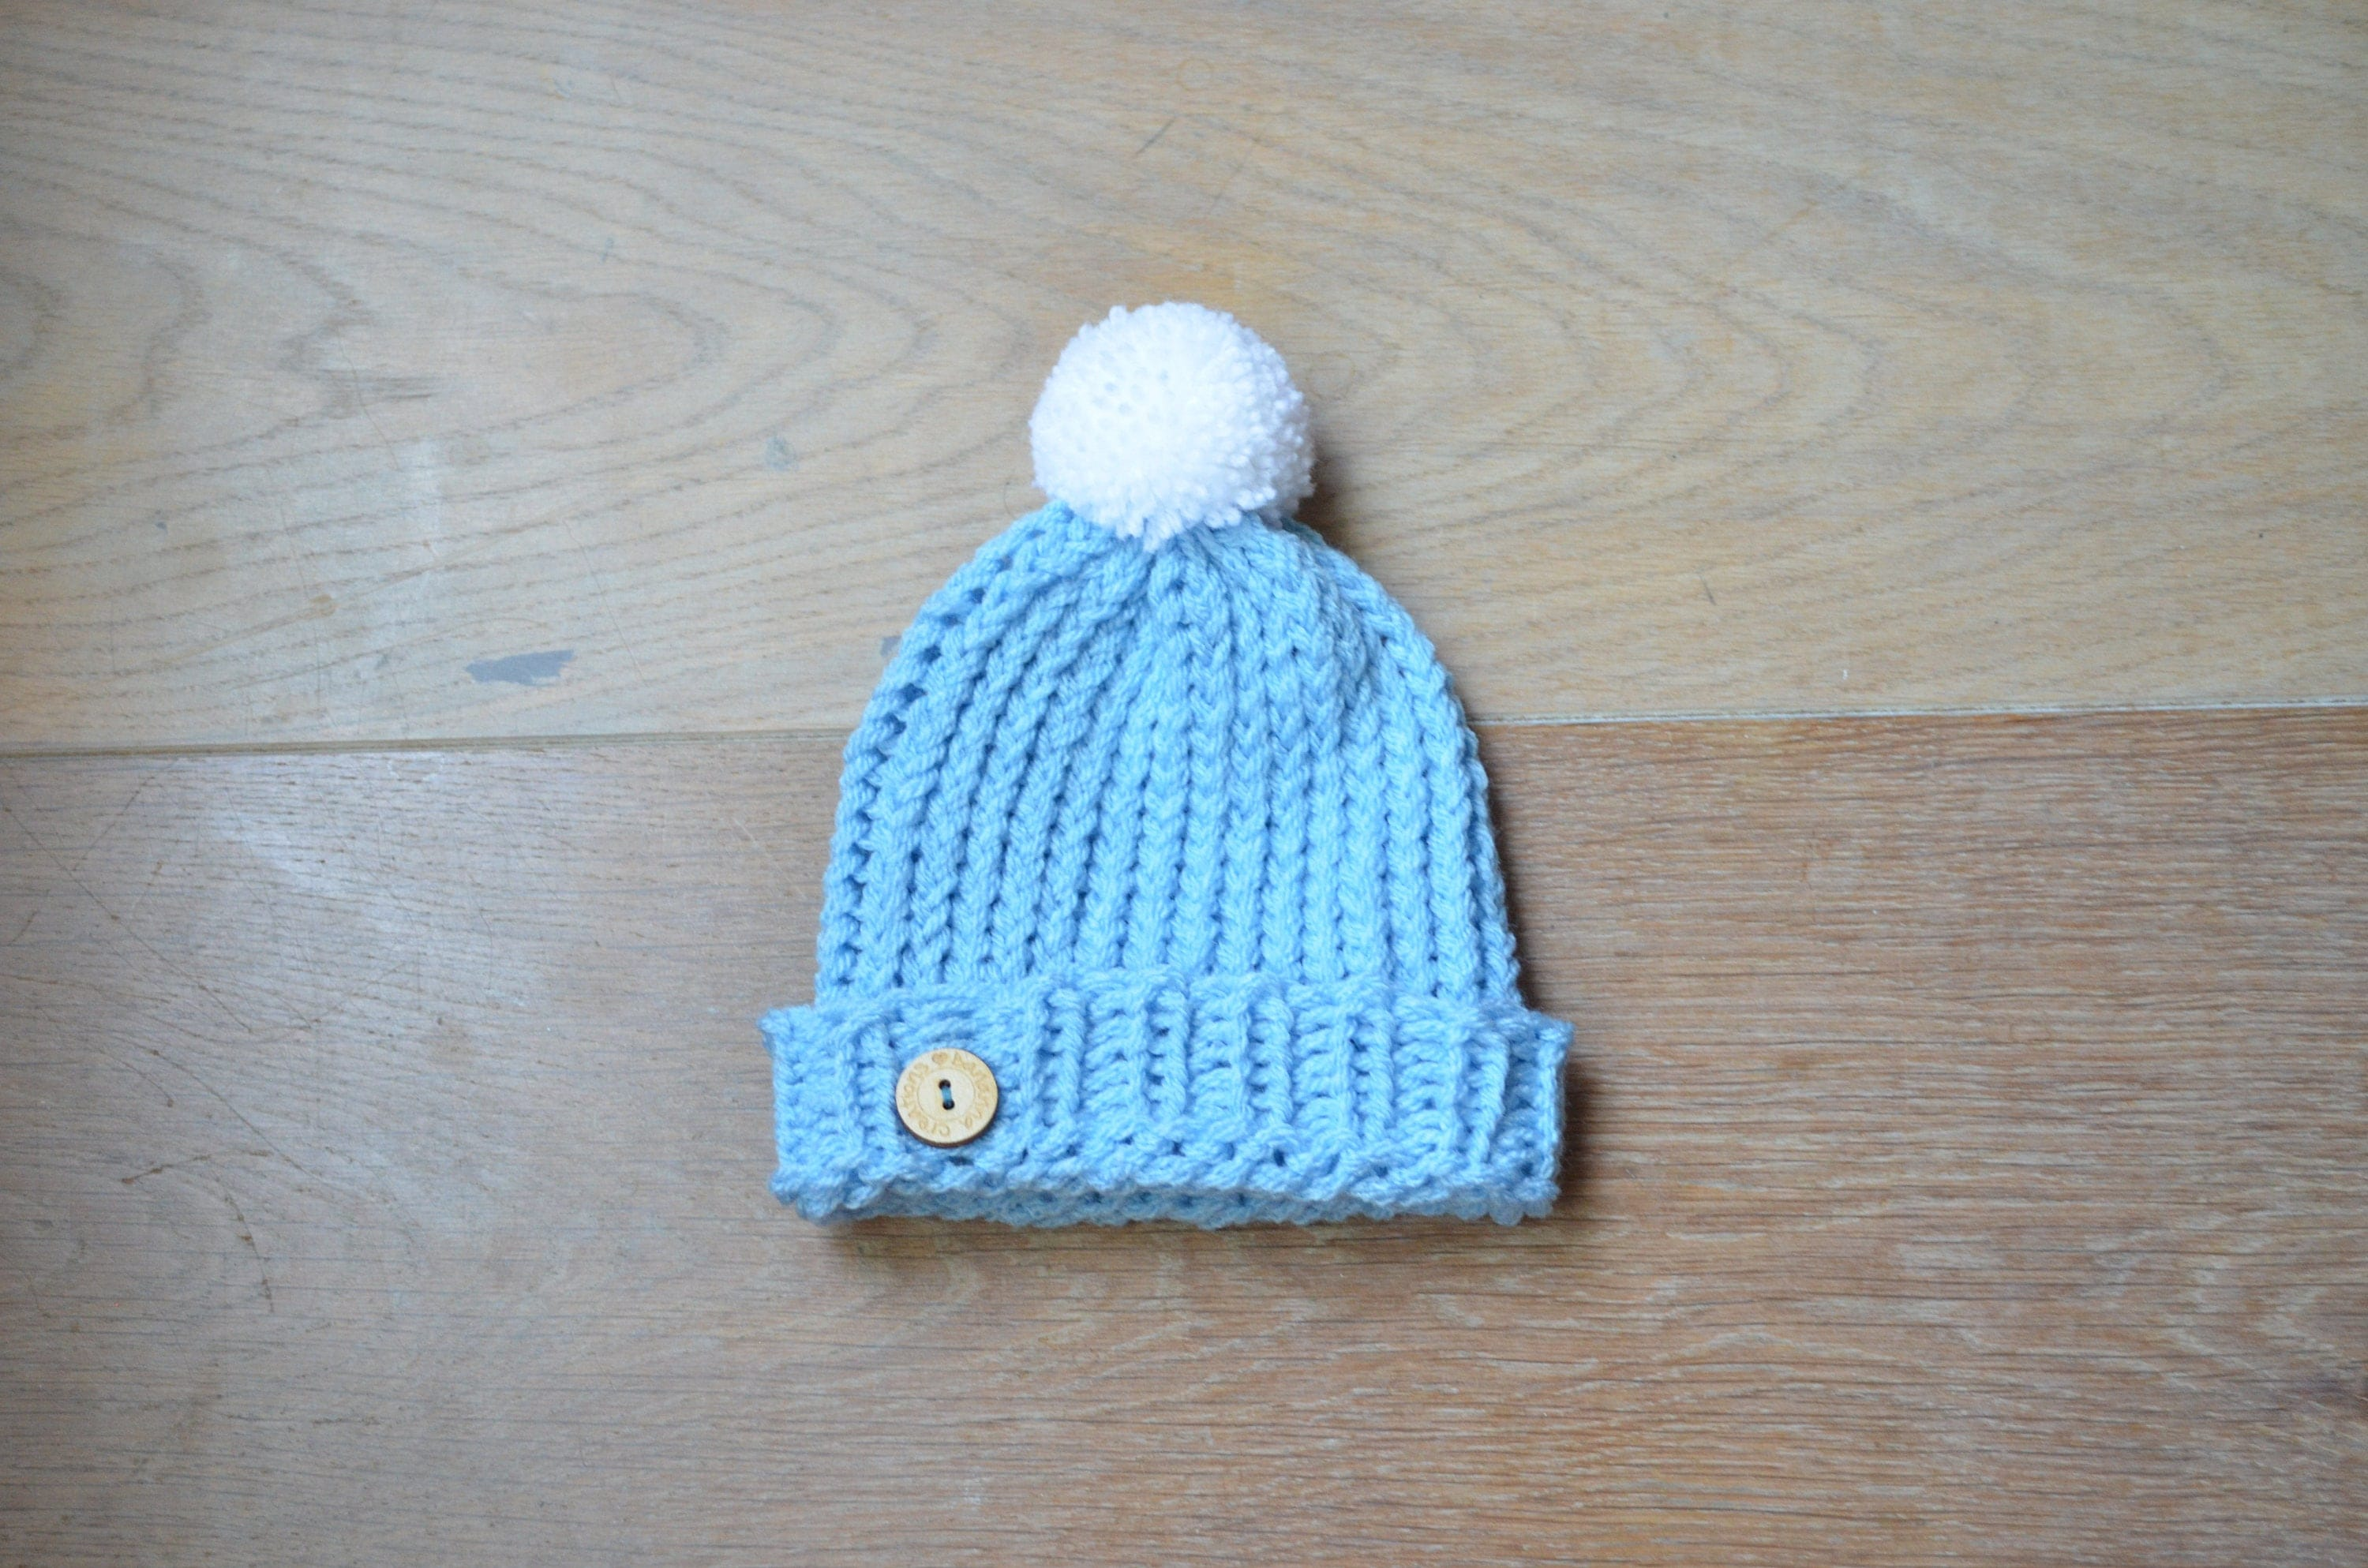 Knit baby hat - Newborn Baby Hat - Blue hat with Pom pom - Knitted Beanie b70662a607bc